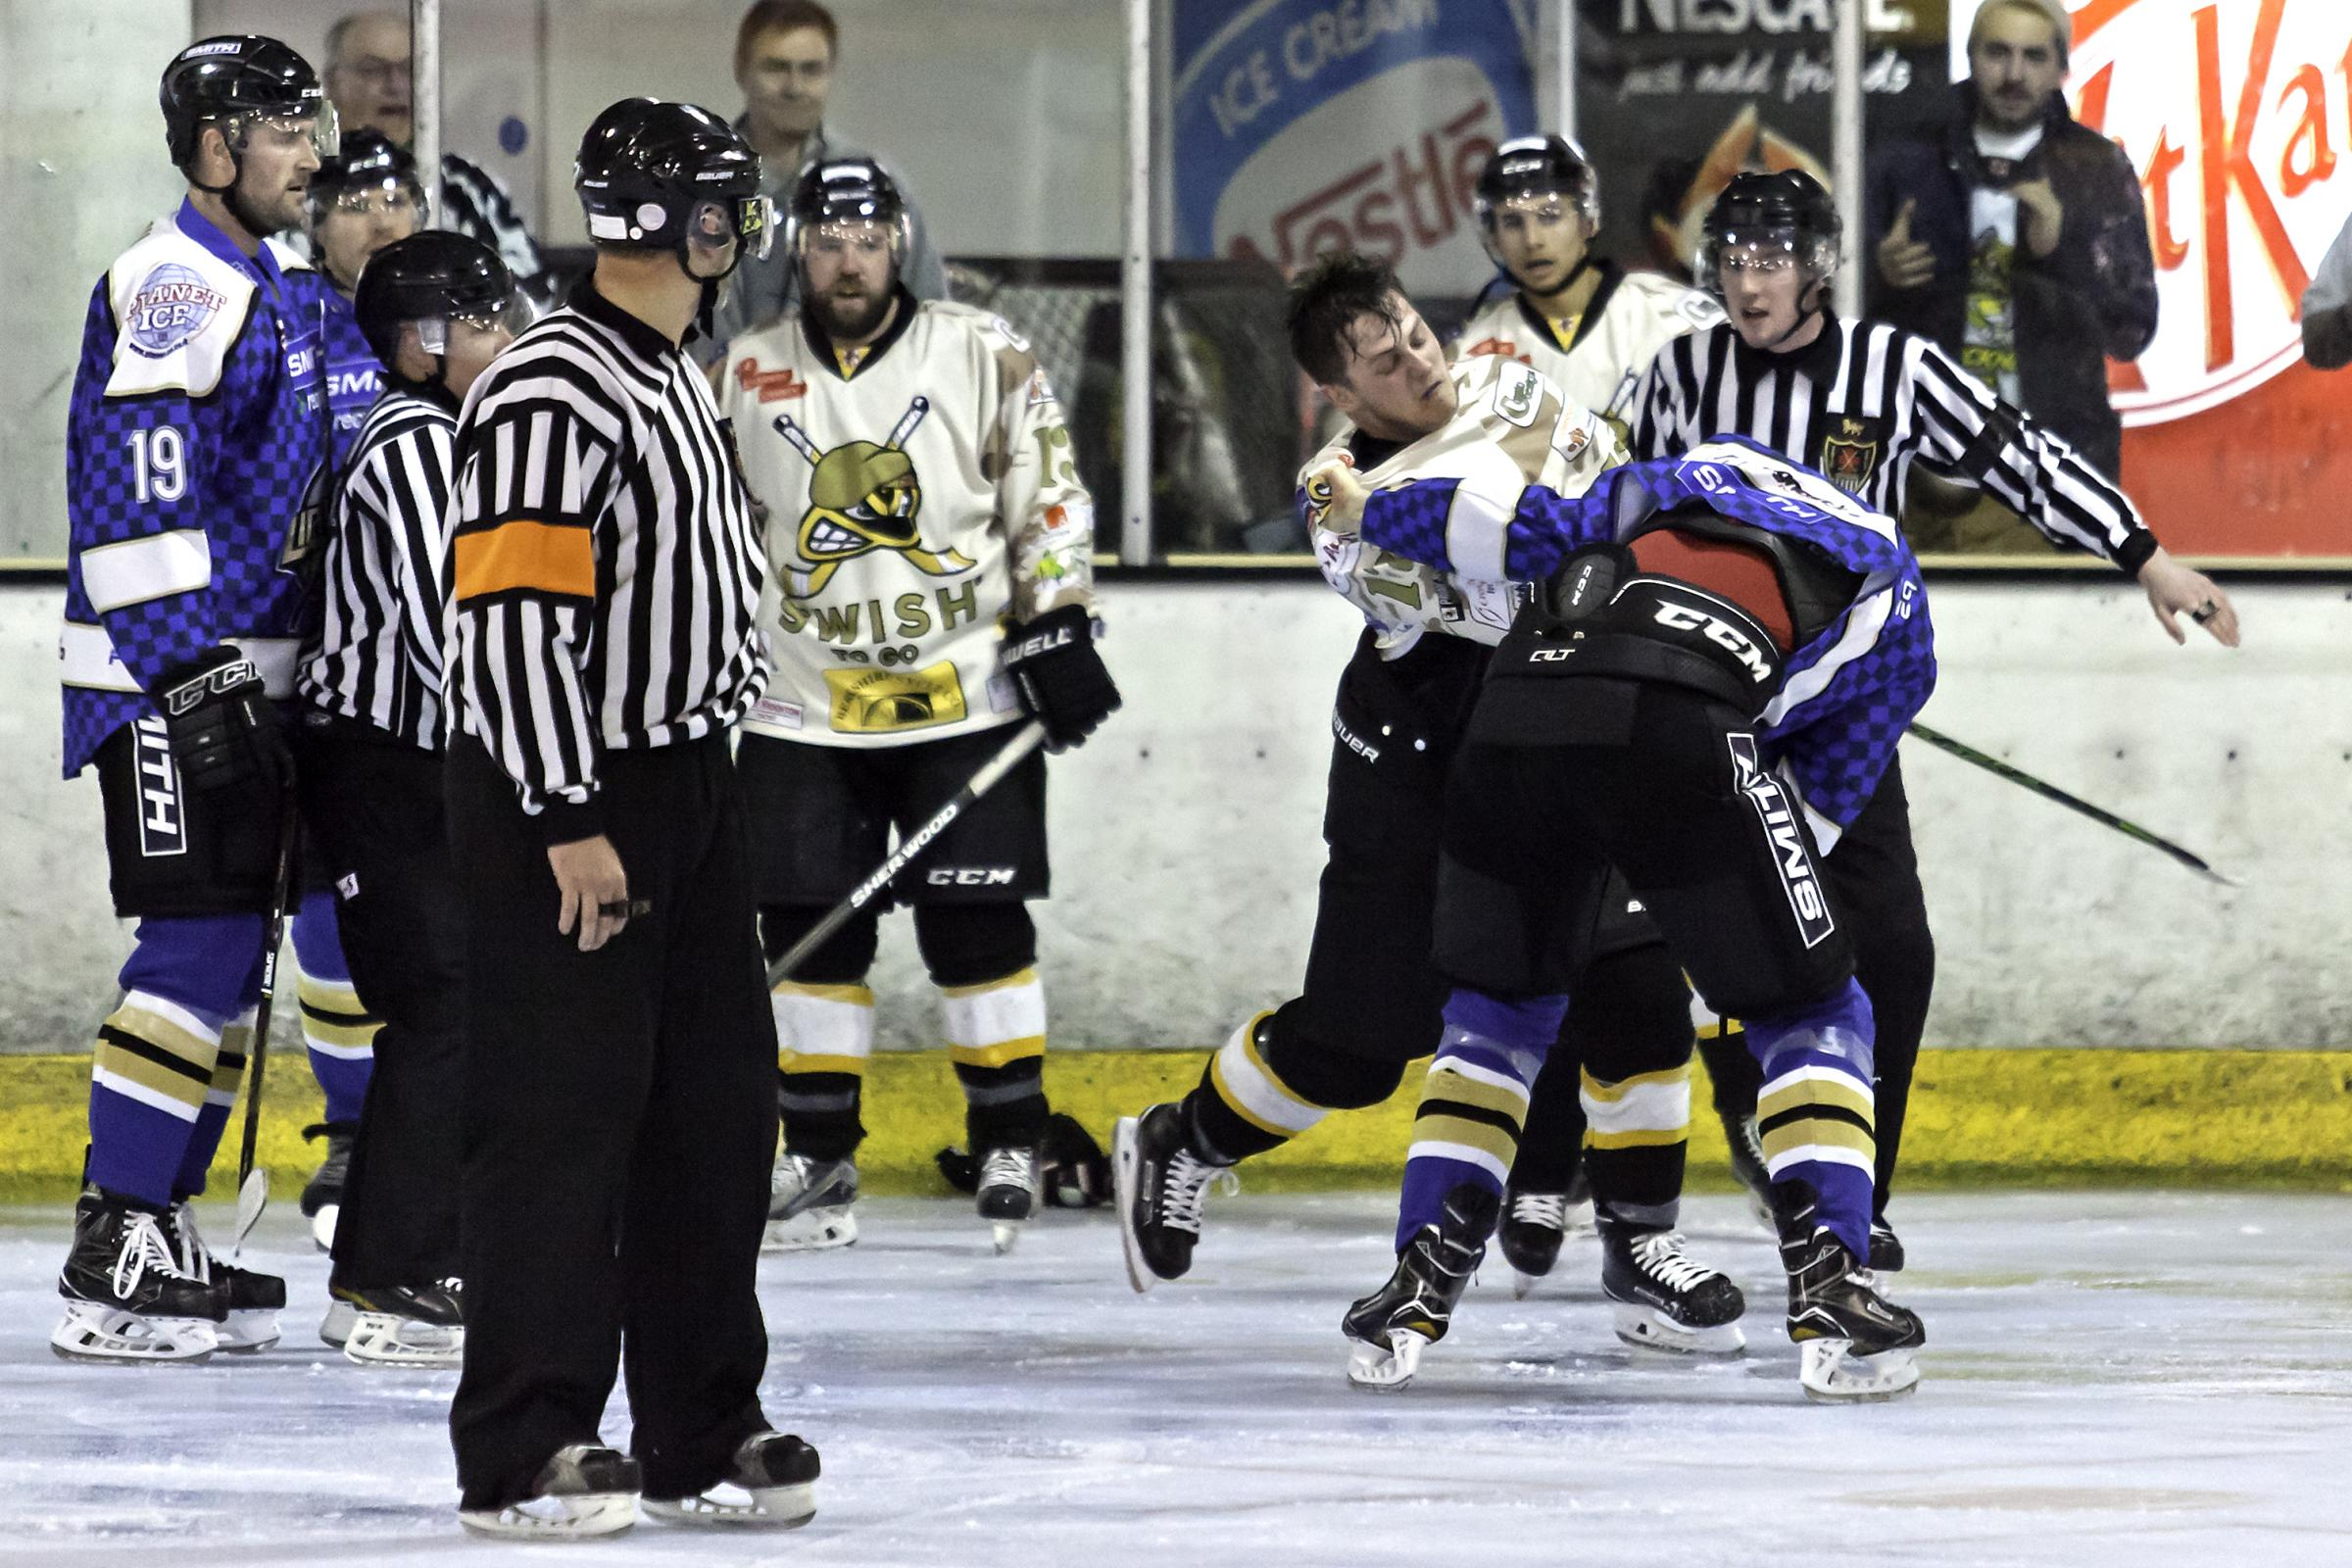 Action from Bracknell Bees' 5-4 loss to Milton Keynes Lightning   Pictures by Kevin Slyfield Photography - www.flickr.com/photos/k_sly